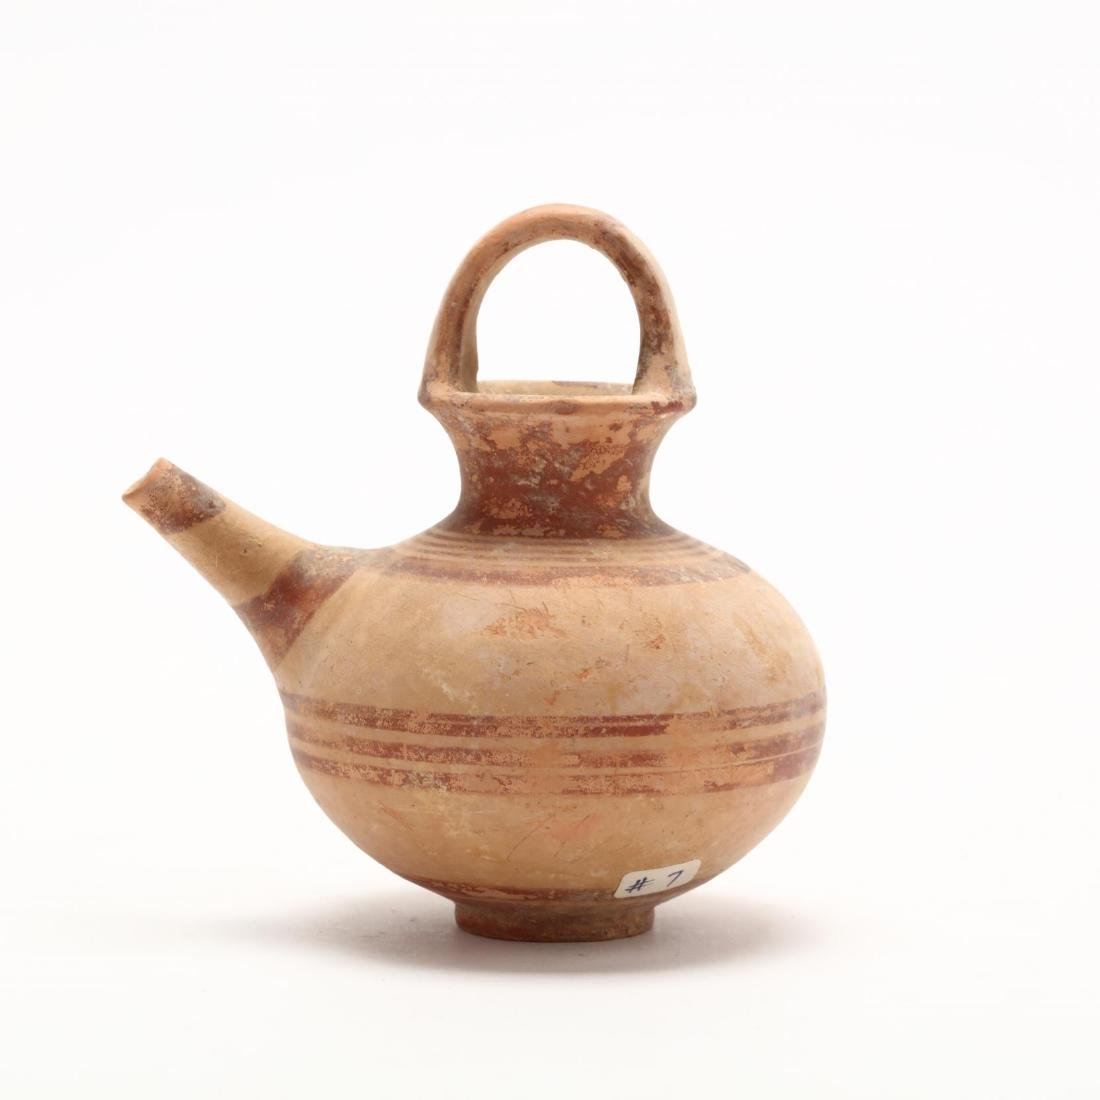 Cypriot Late Bronze Age Juglet With Spout - 3